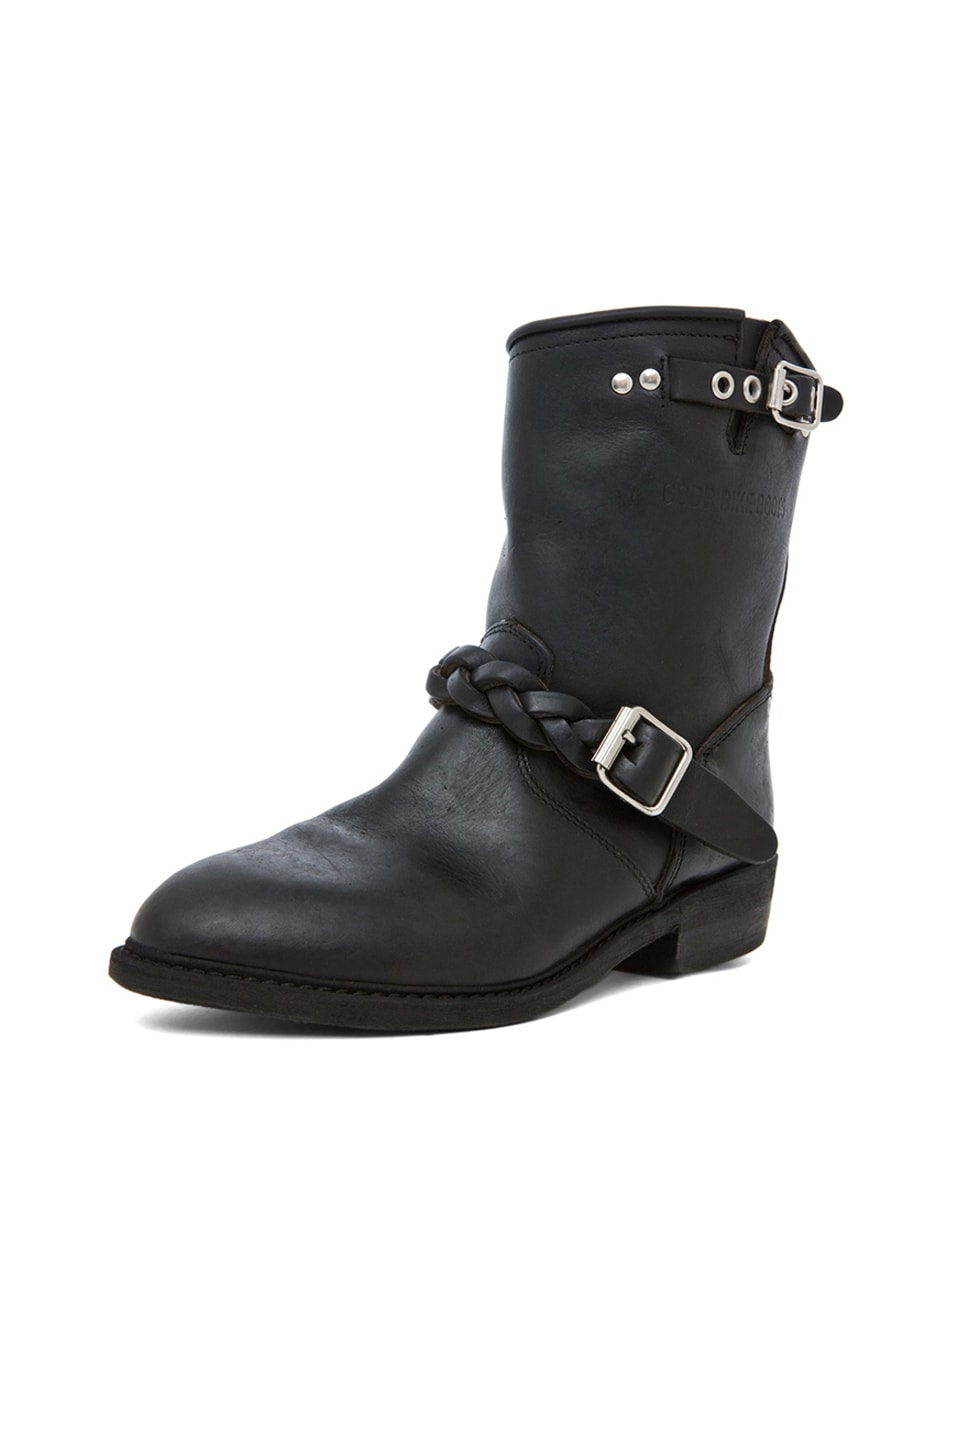 Image 2 of Golden Goose Leather Short Biker Boots in Black Stud